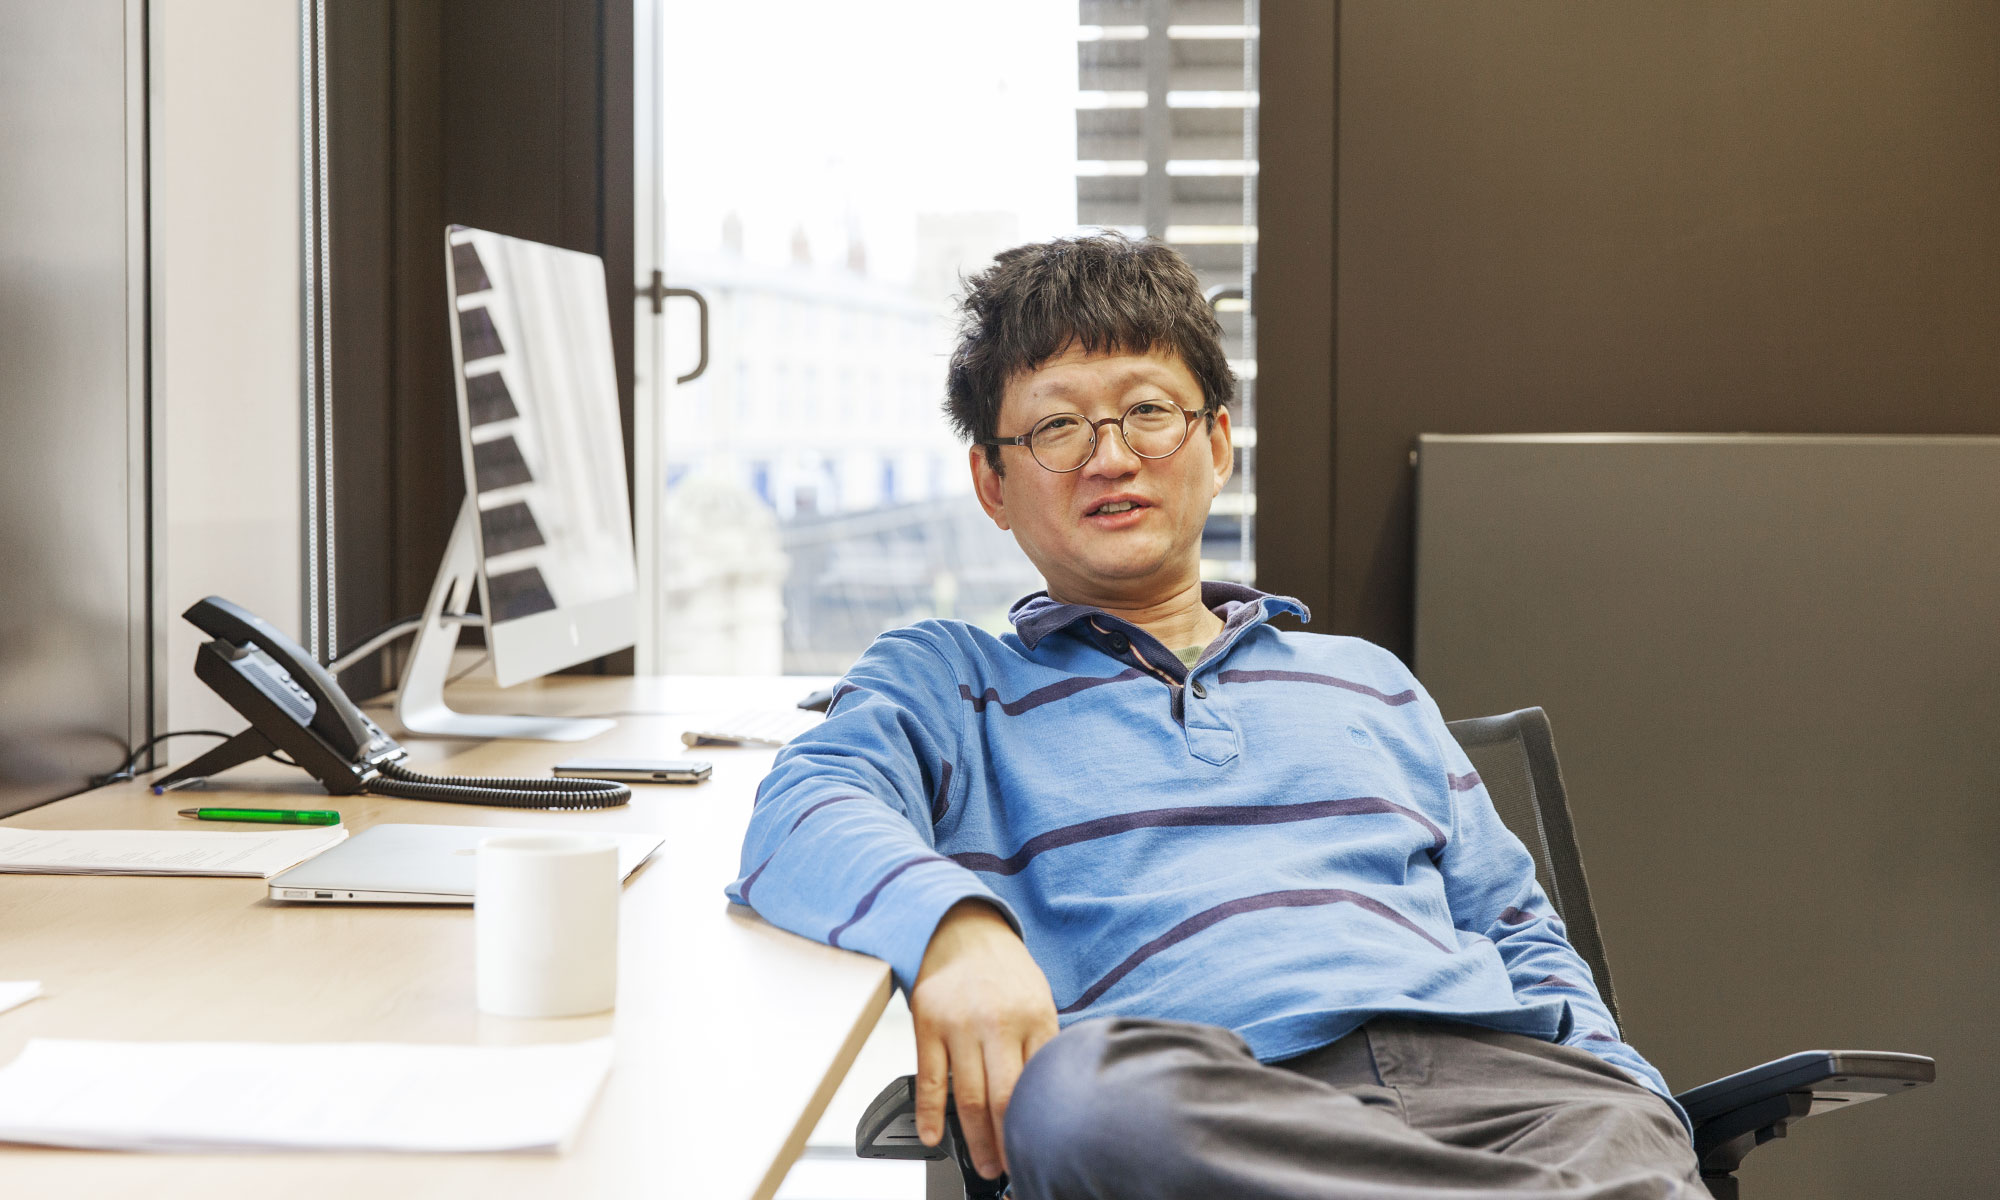 Minhyong Kim in his office